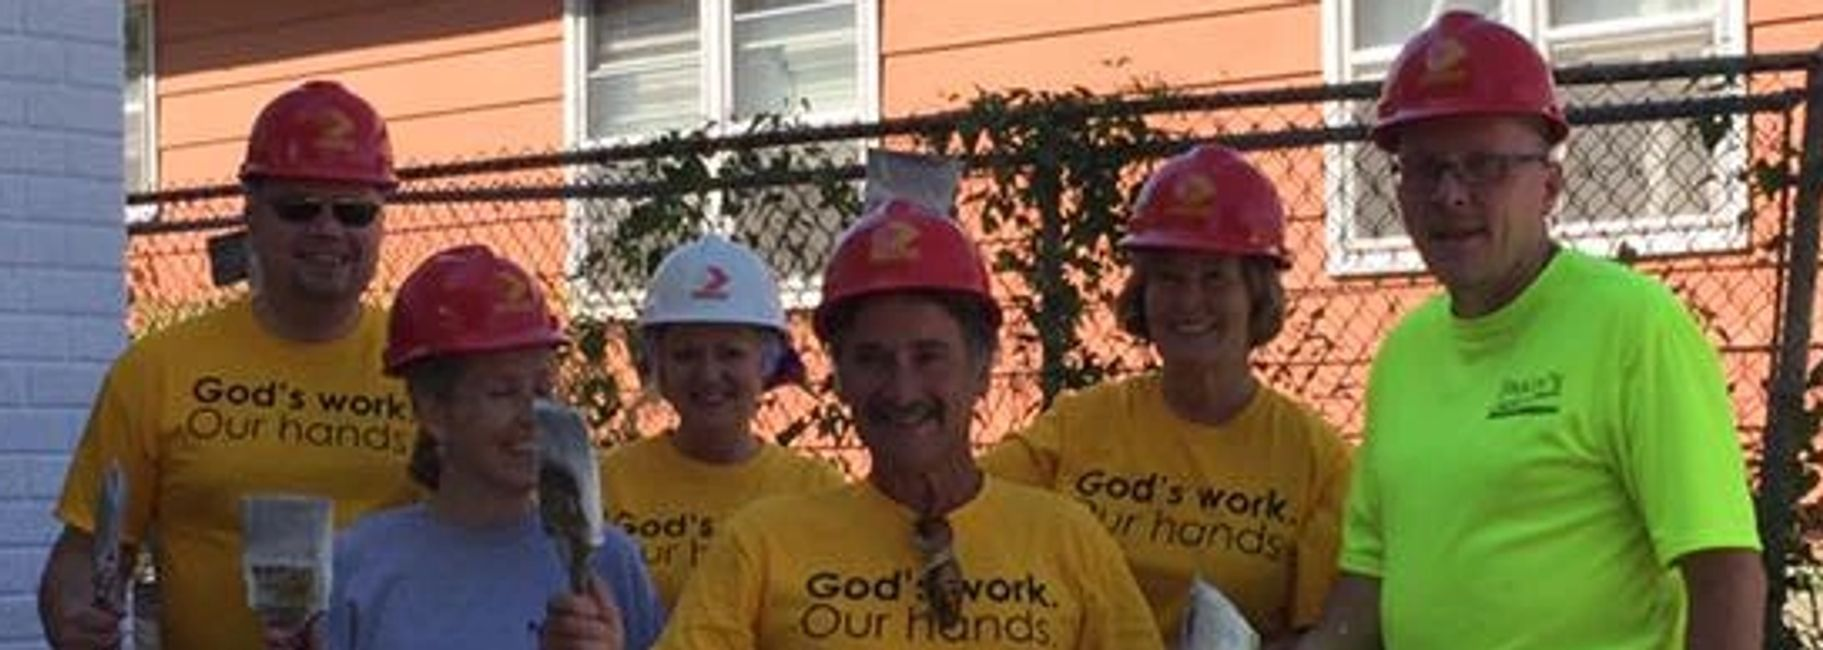 "Volunteers holding paintbrushes, wearing hardhats and tee-shirts which say ""God's work, our hands""."